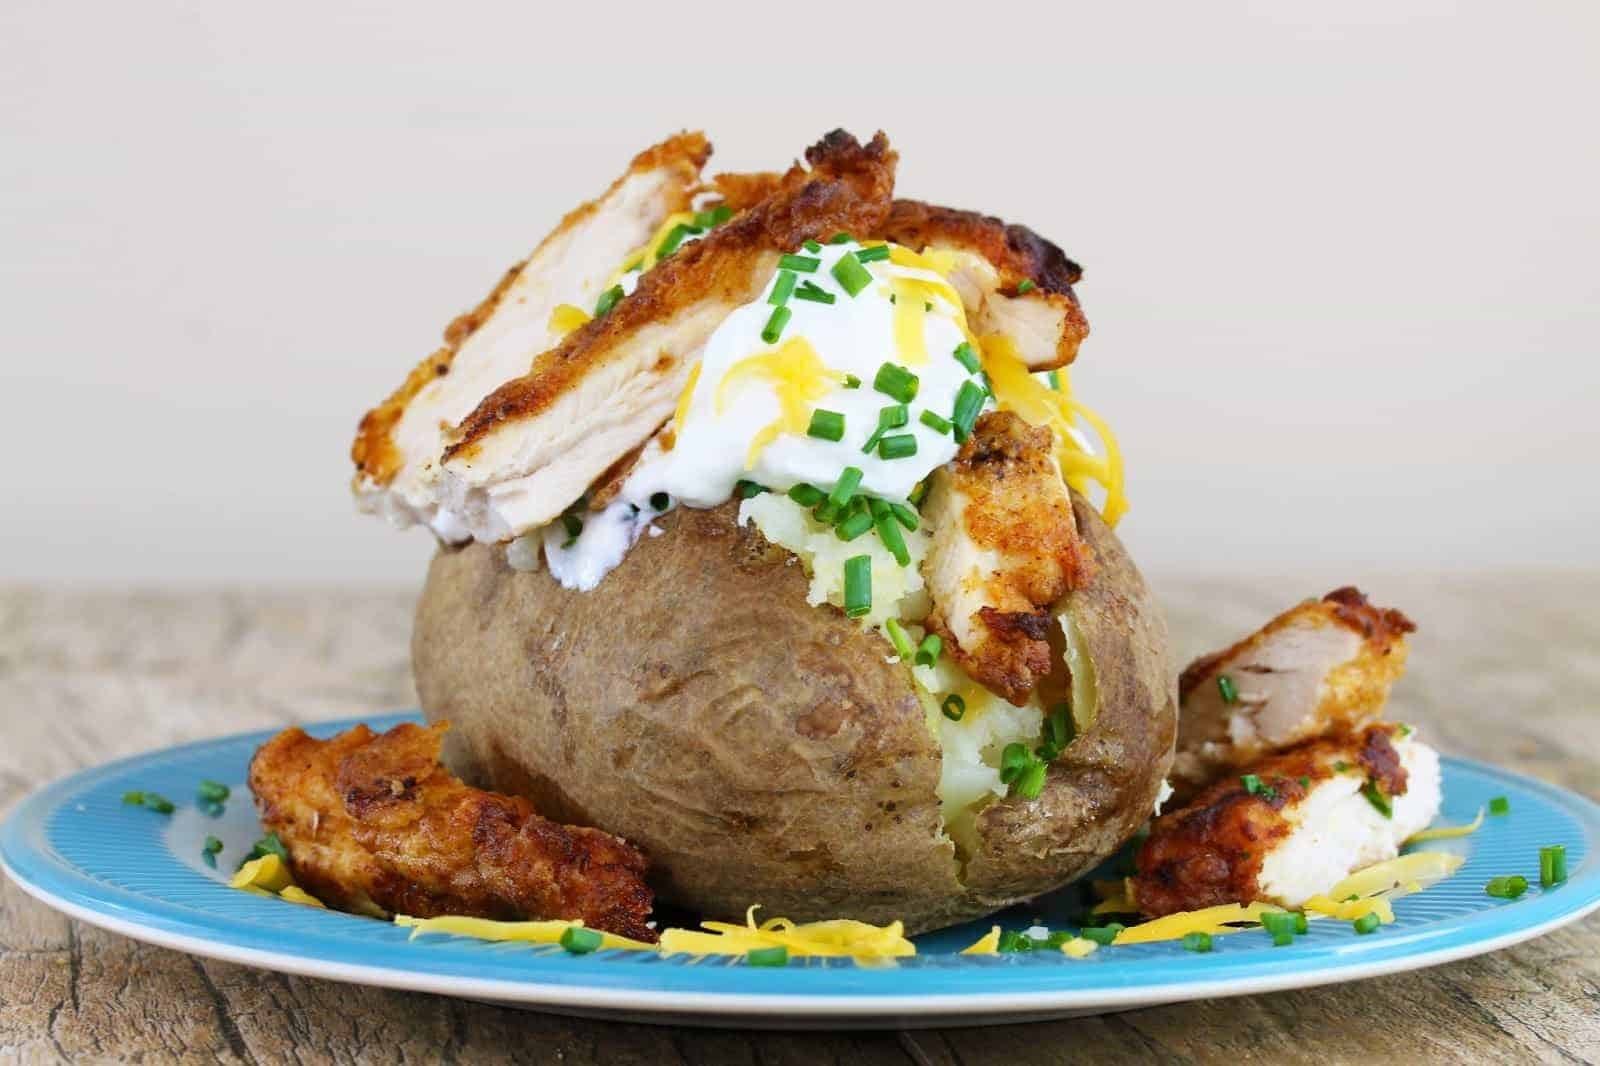 Low view of A baked potato stuffed with sour cream, cheddar cheese and fried chicken, garnished with fresh chives